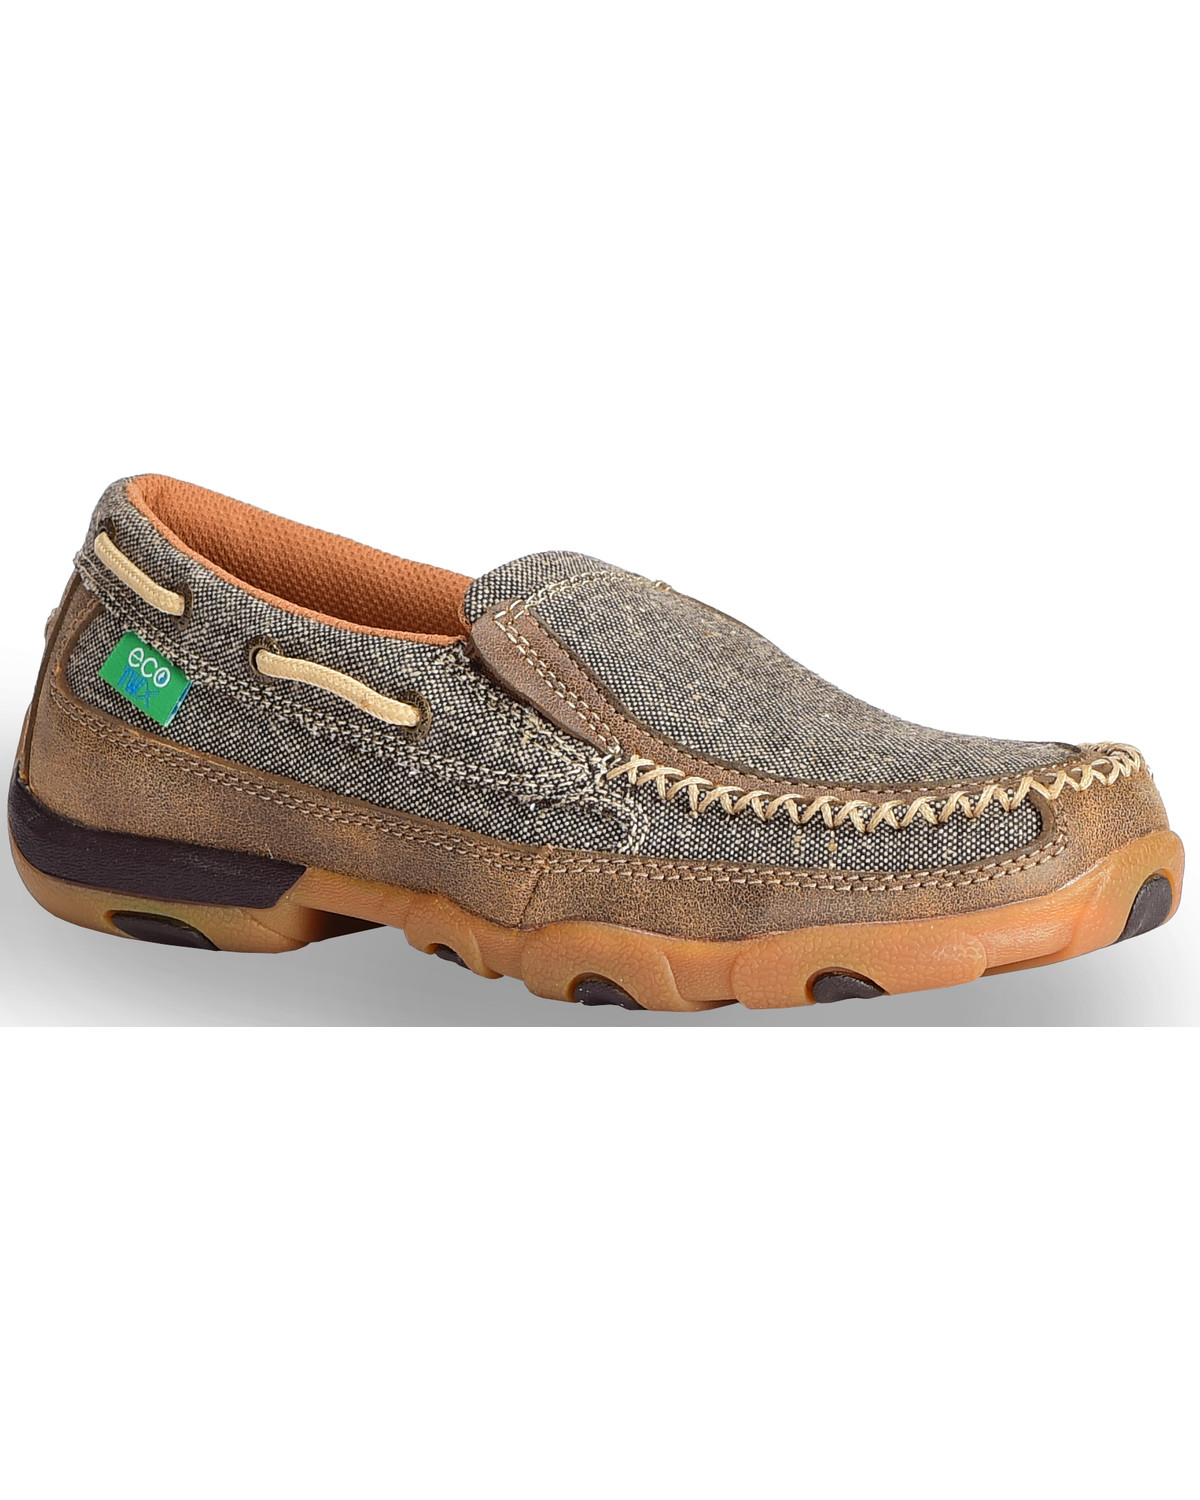 Twisted X Women's ECO TWX Slip-On Driving Moccasins